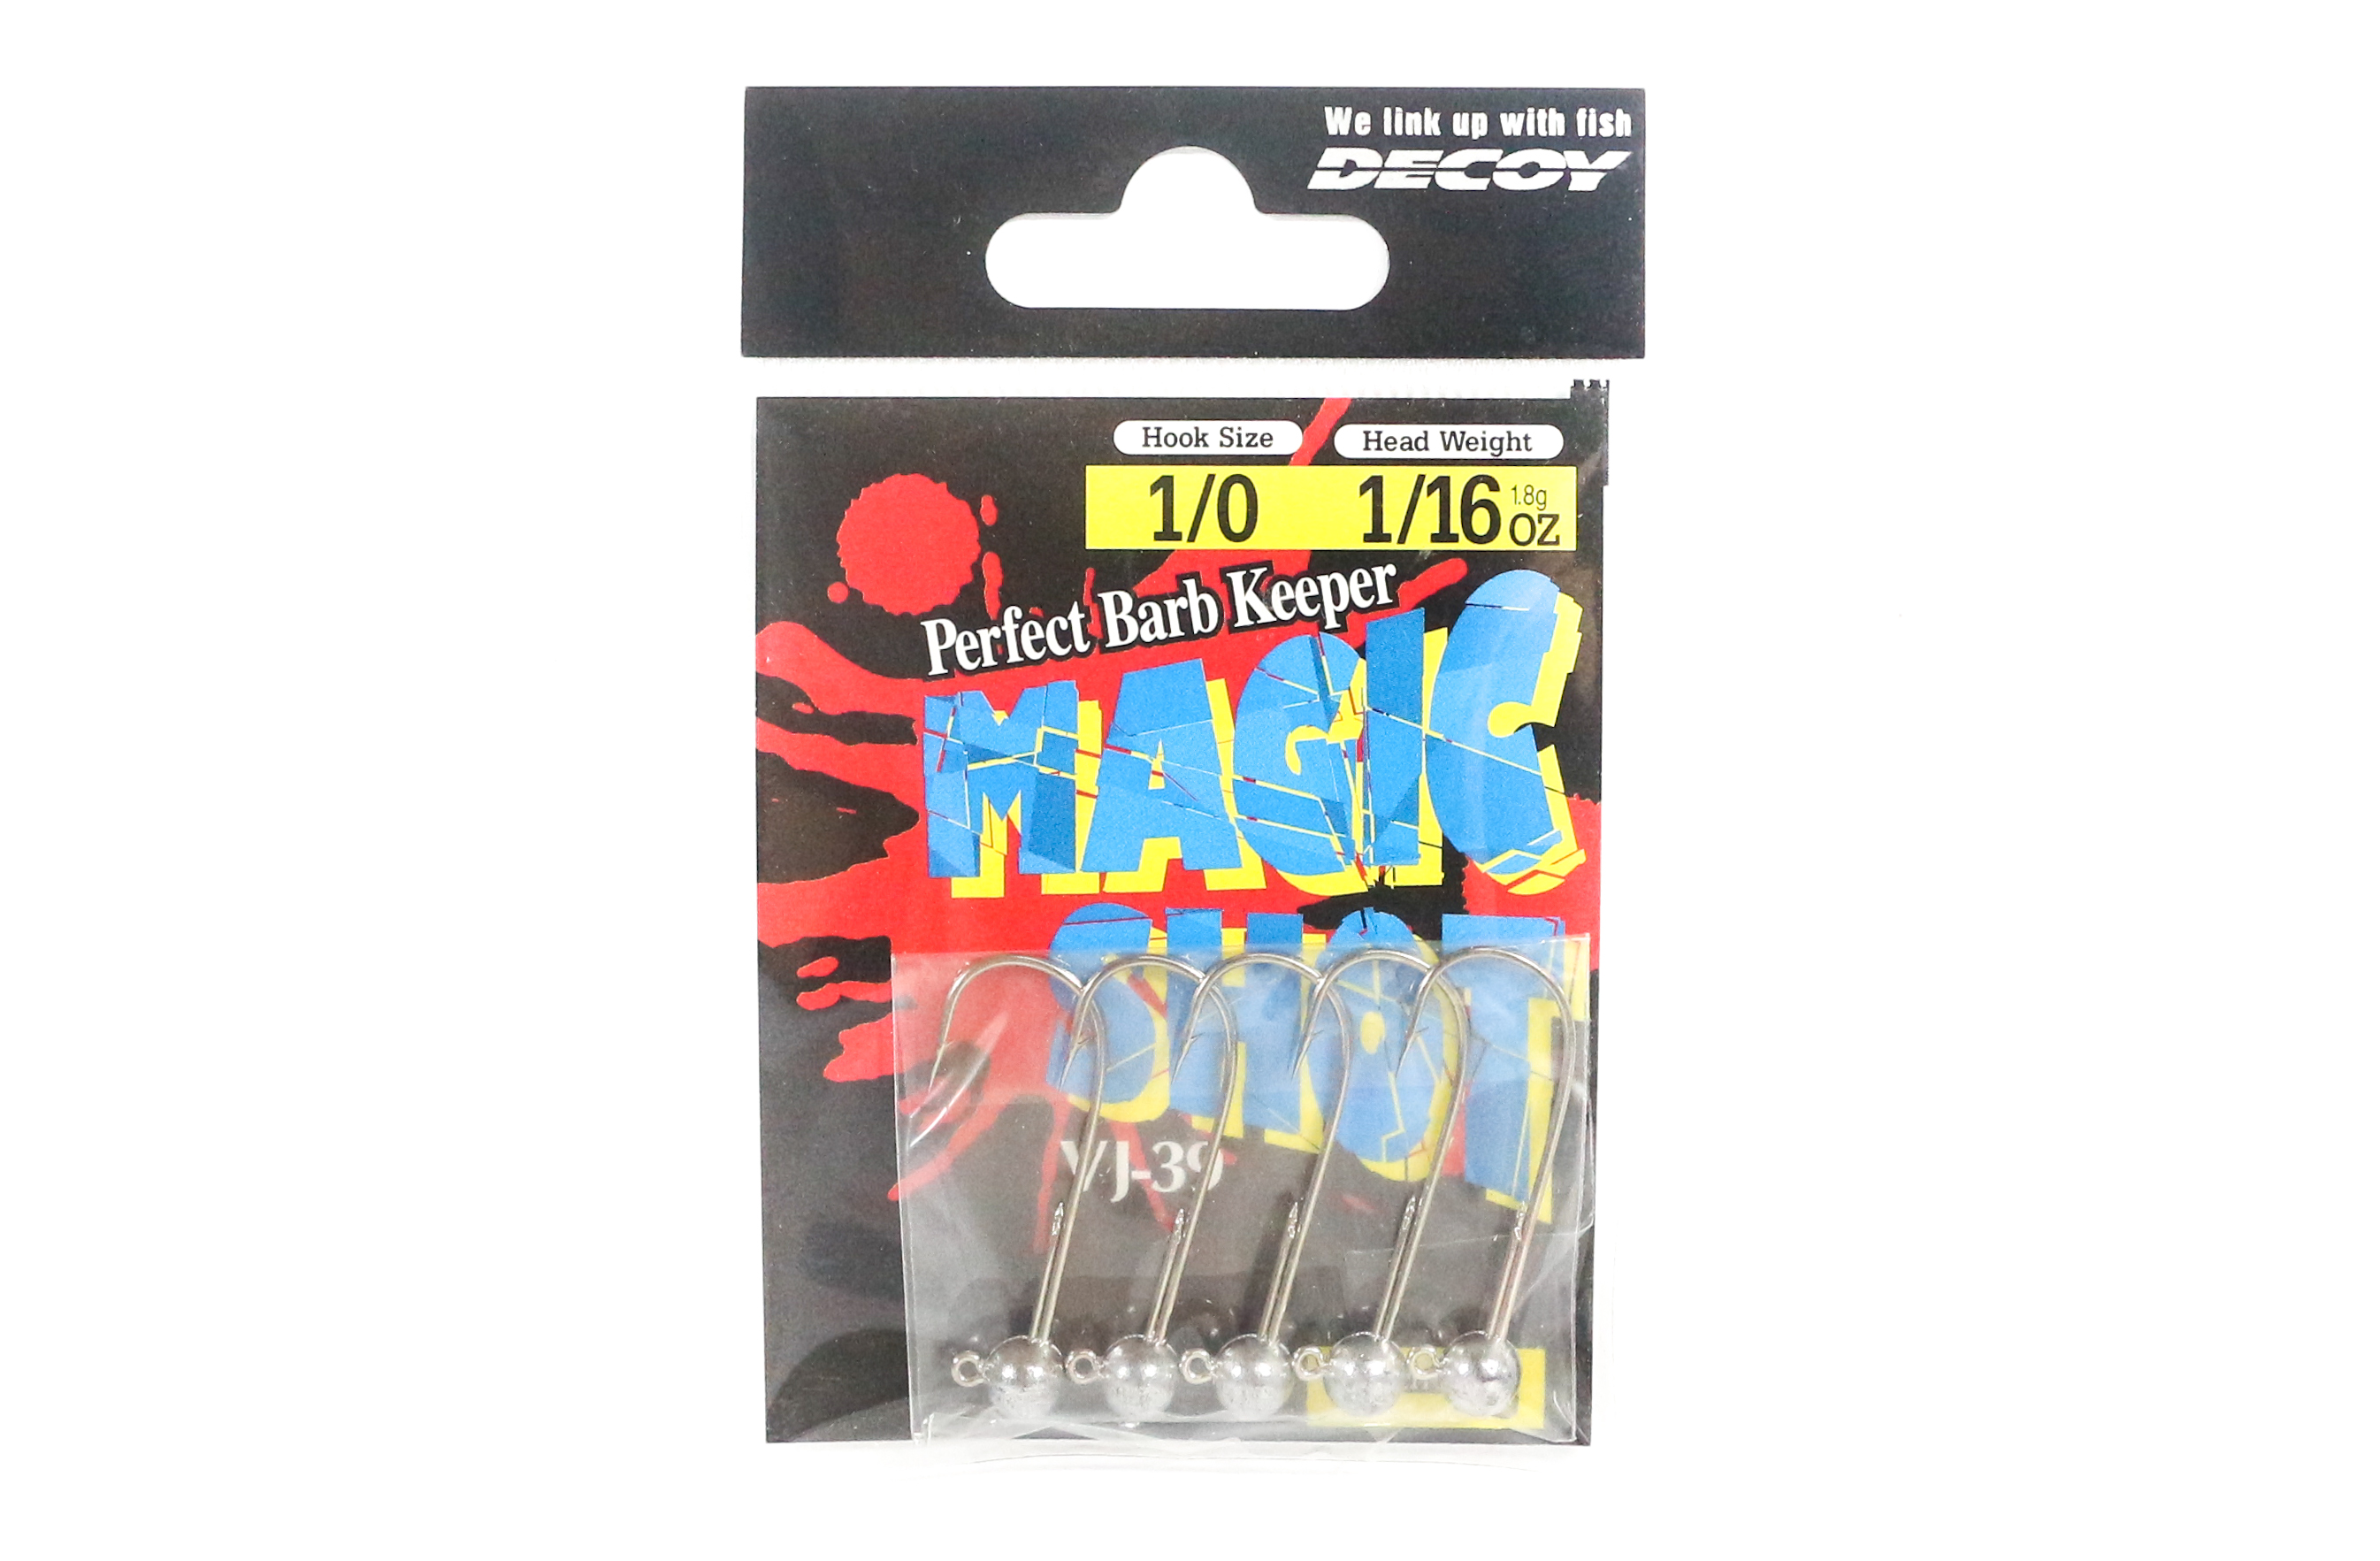 Decoy VJ-39 Magic Shot Jig Head Size 1/0 , 1/16 oz (6531)